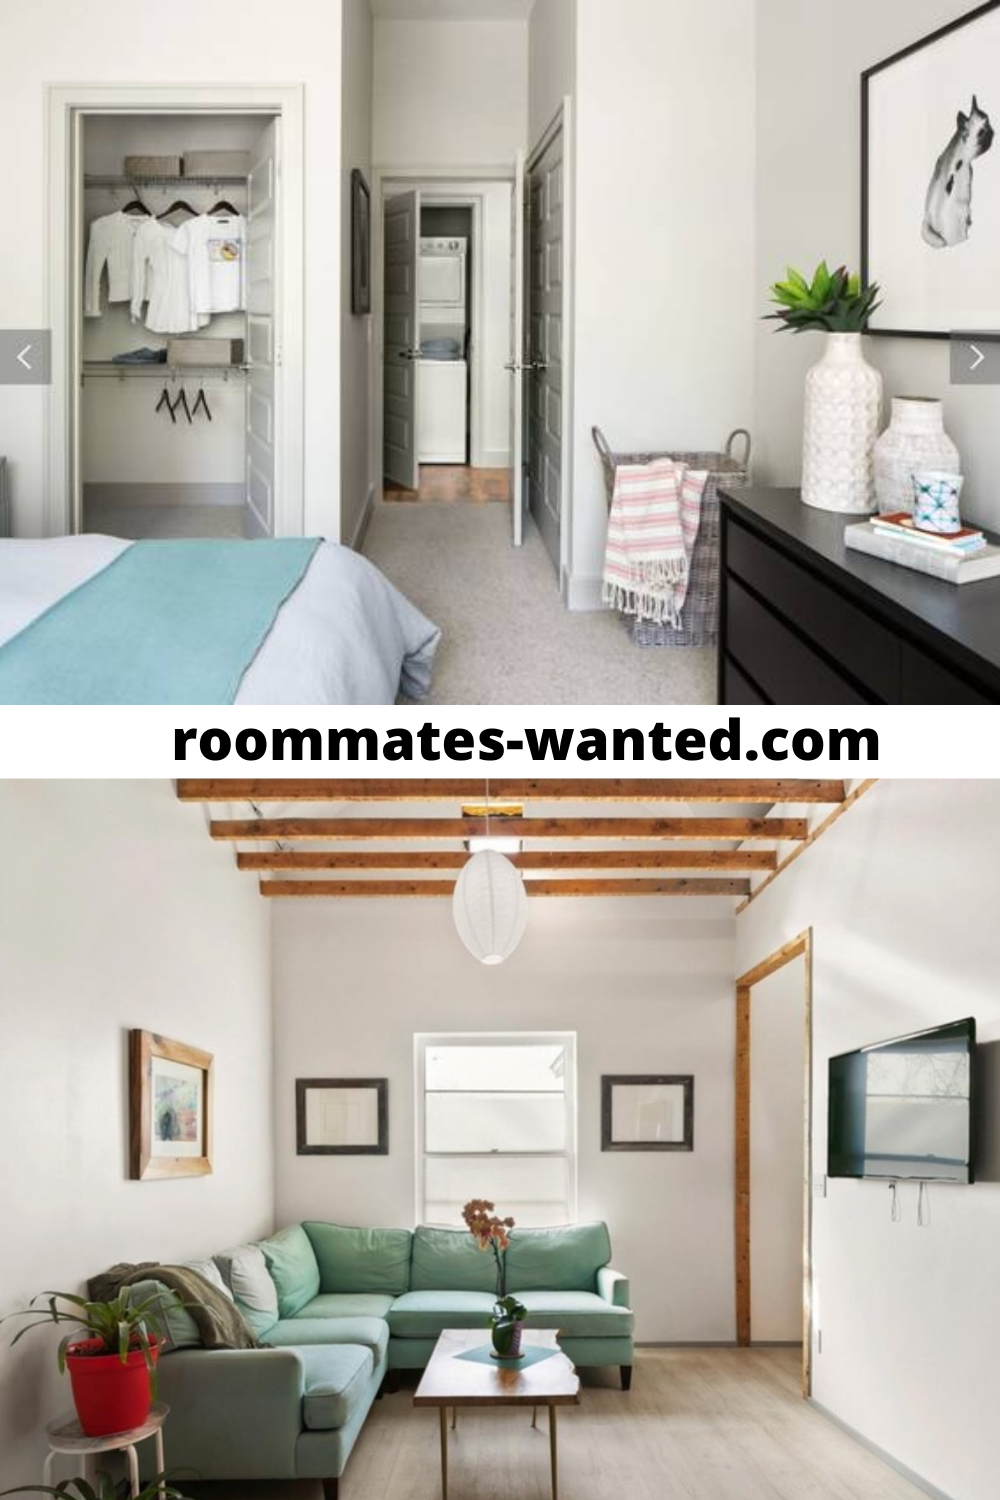 Denver Rooms For Rent In 2020 Rooms For Rent Shared Rooms Roommate Wanted